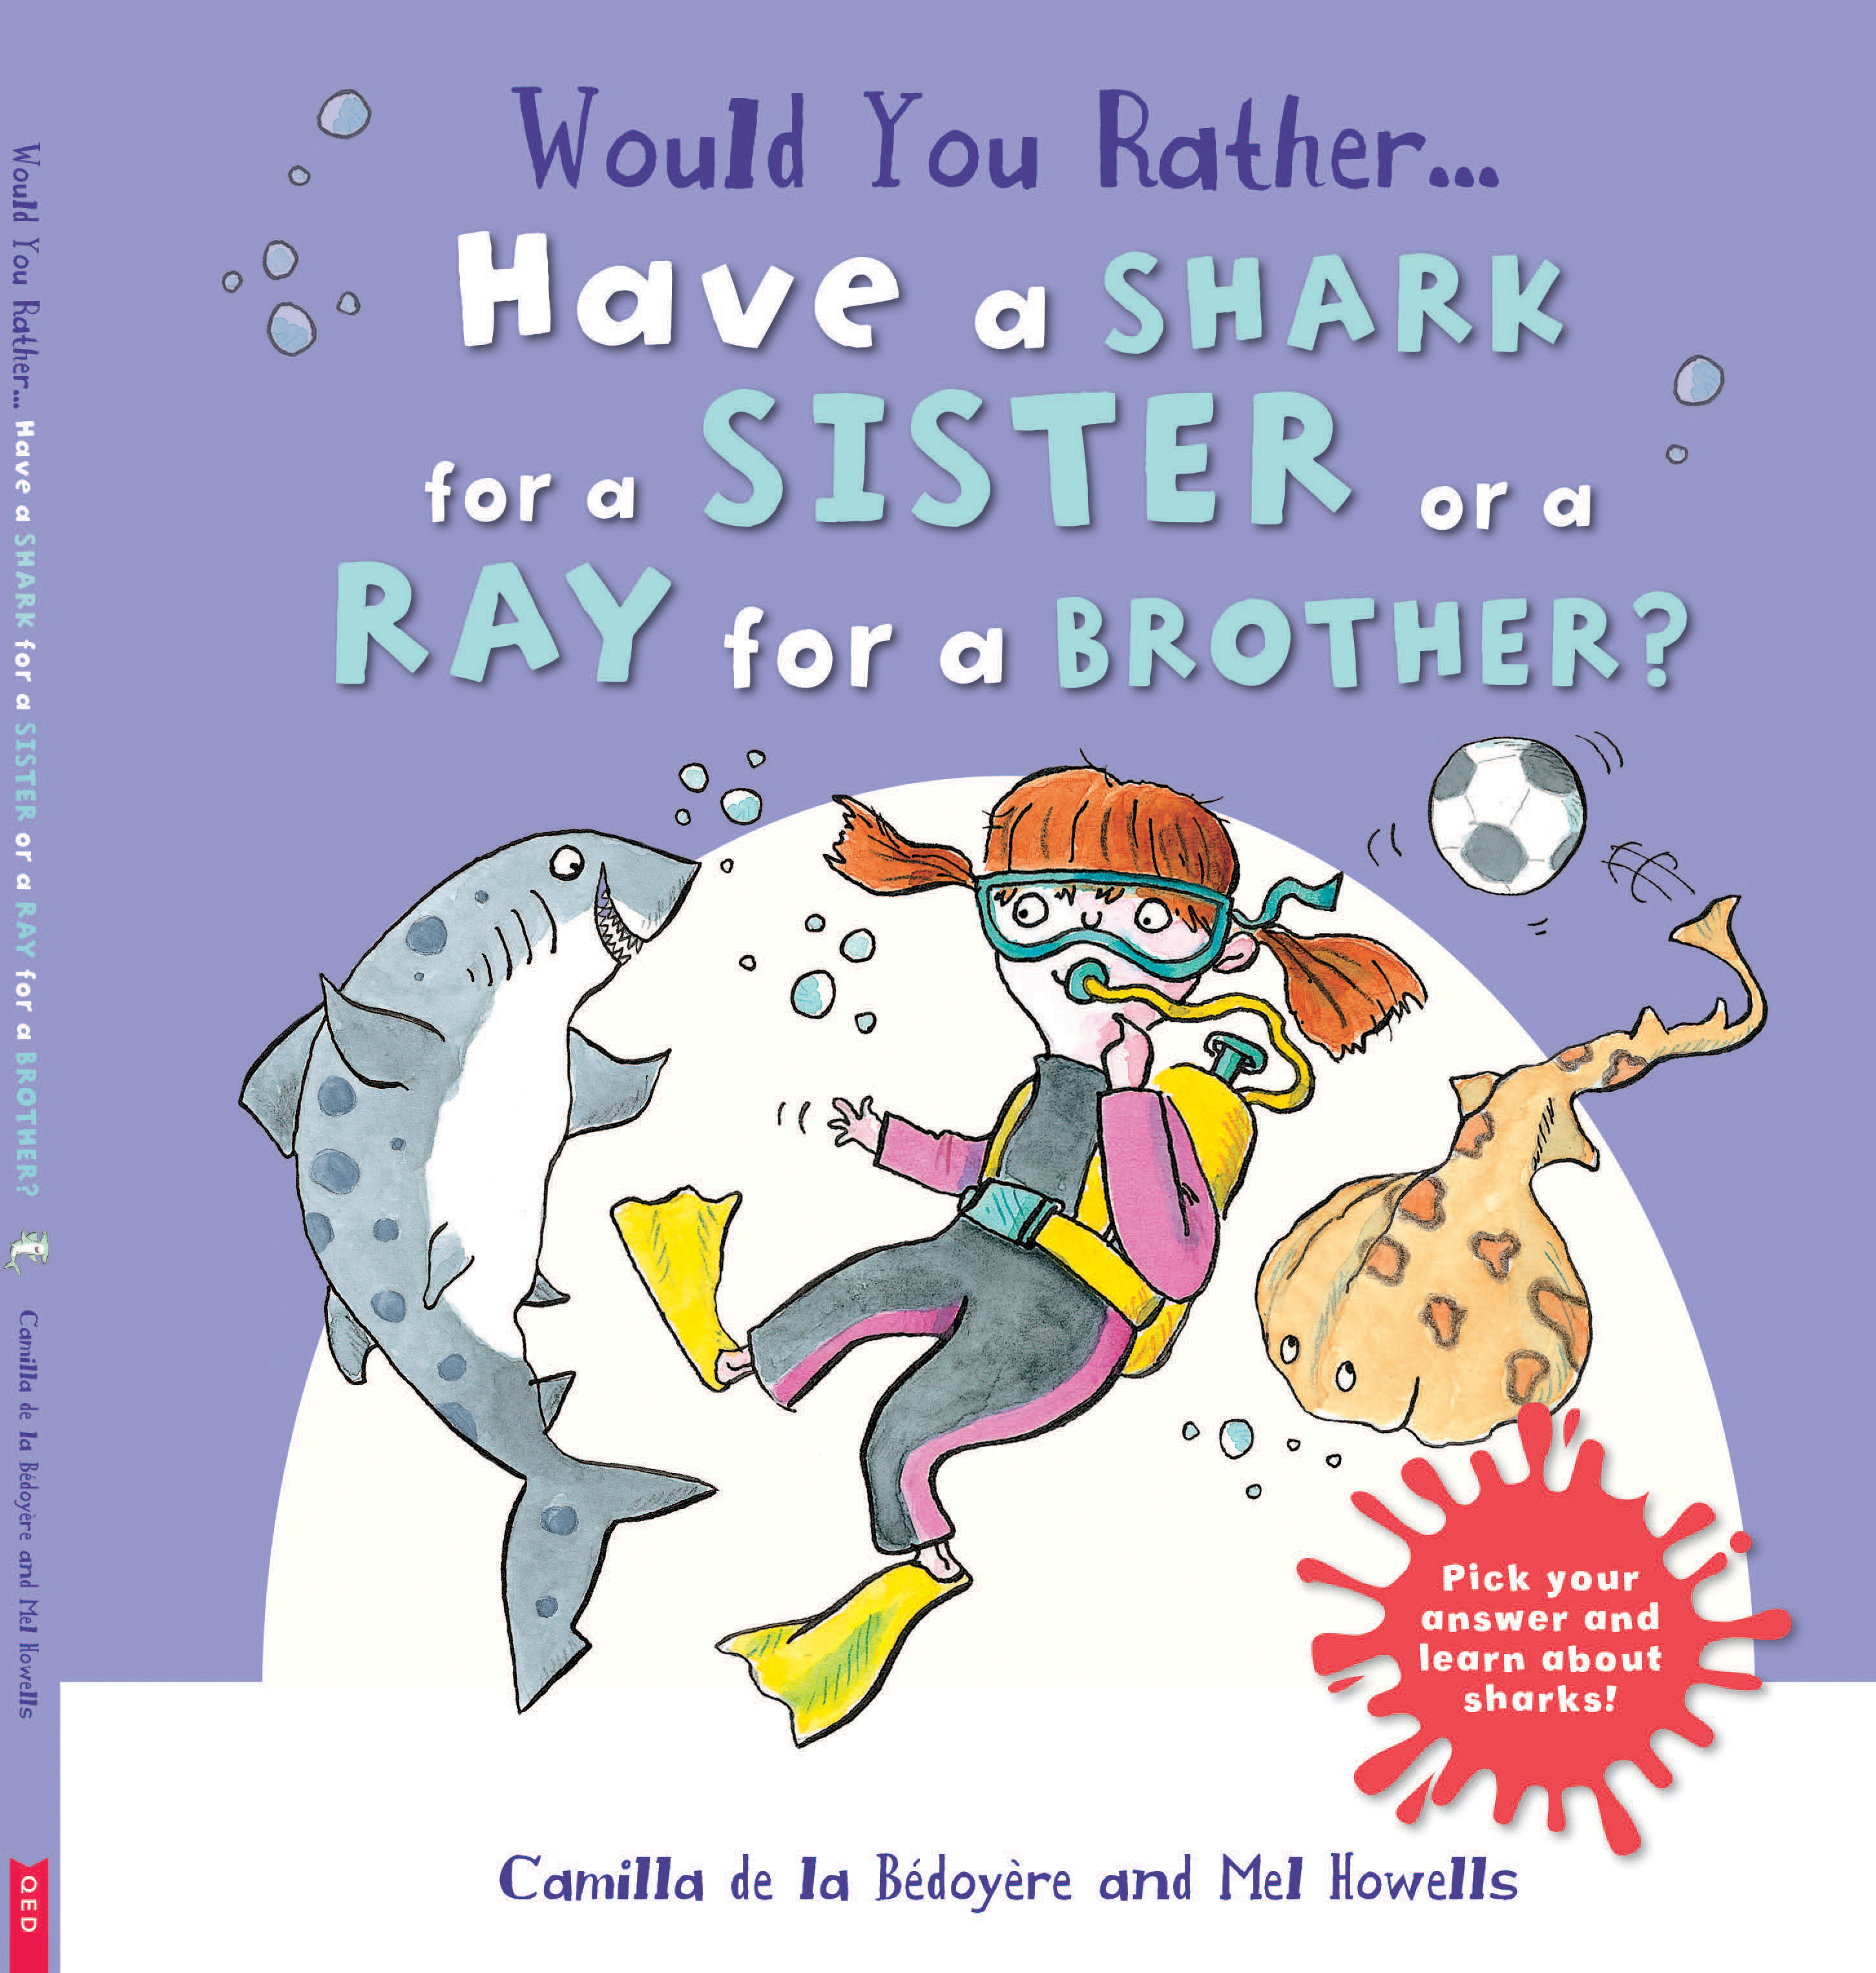 would you rather have a shark for a sister or a ray for a brother